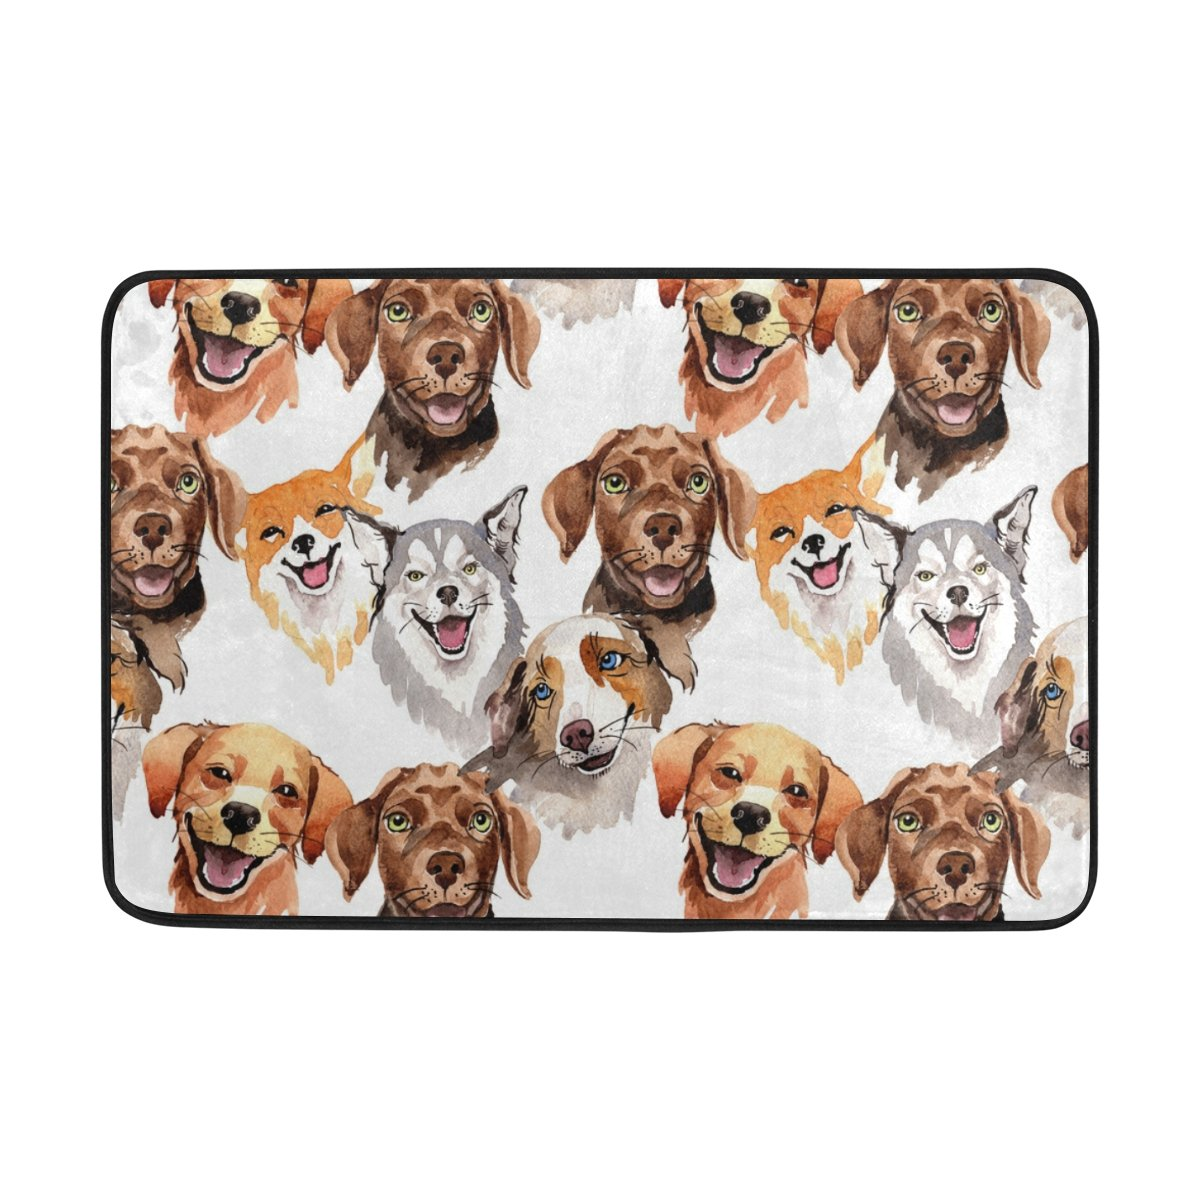 Top Carpenter Wild Animal Dog Area Rug Pad - 23.6x15.7 inch - 100% Light Weight Polyester Fabric for Living - Bedroom